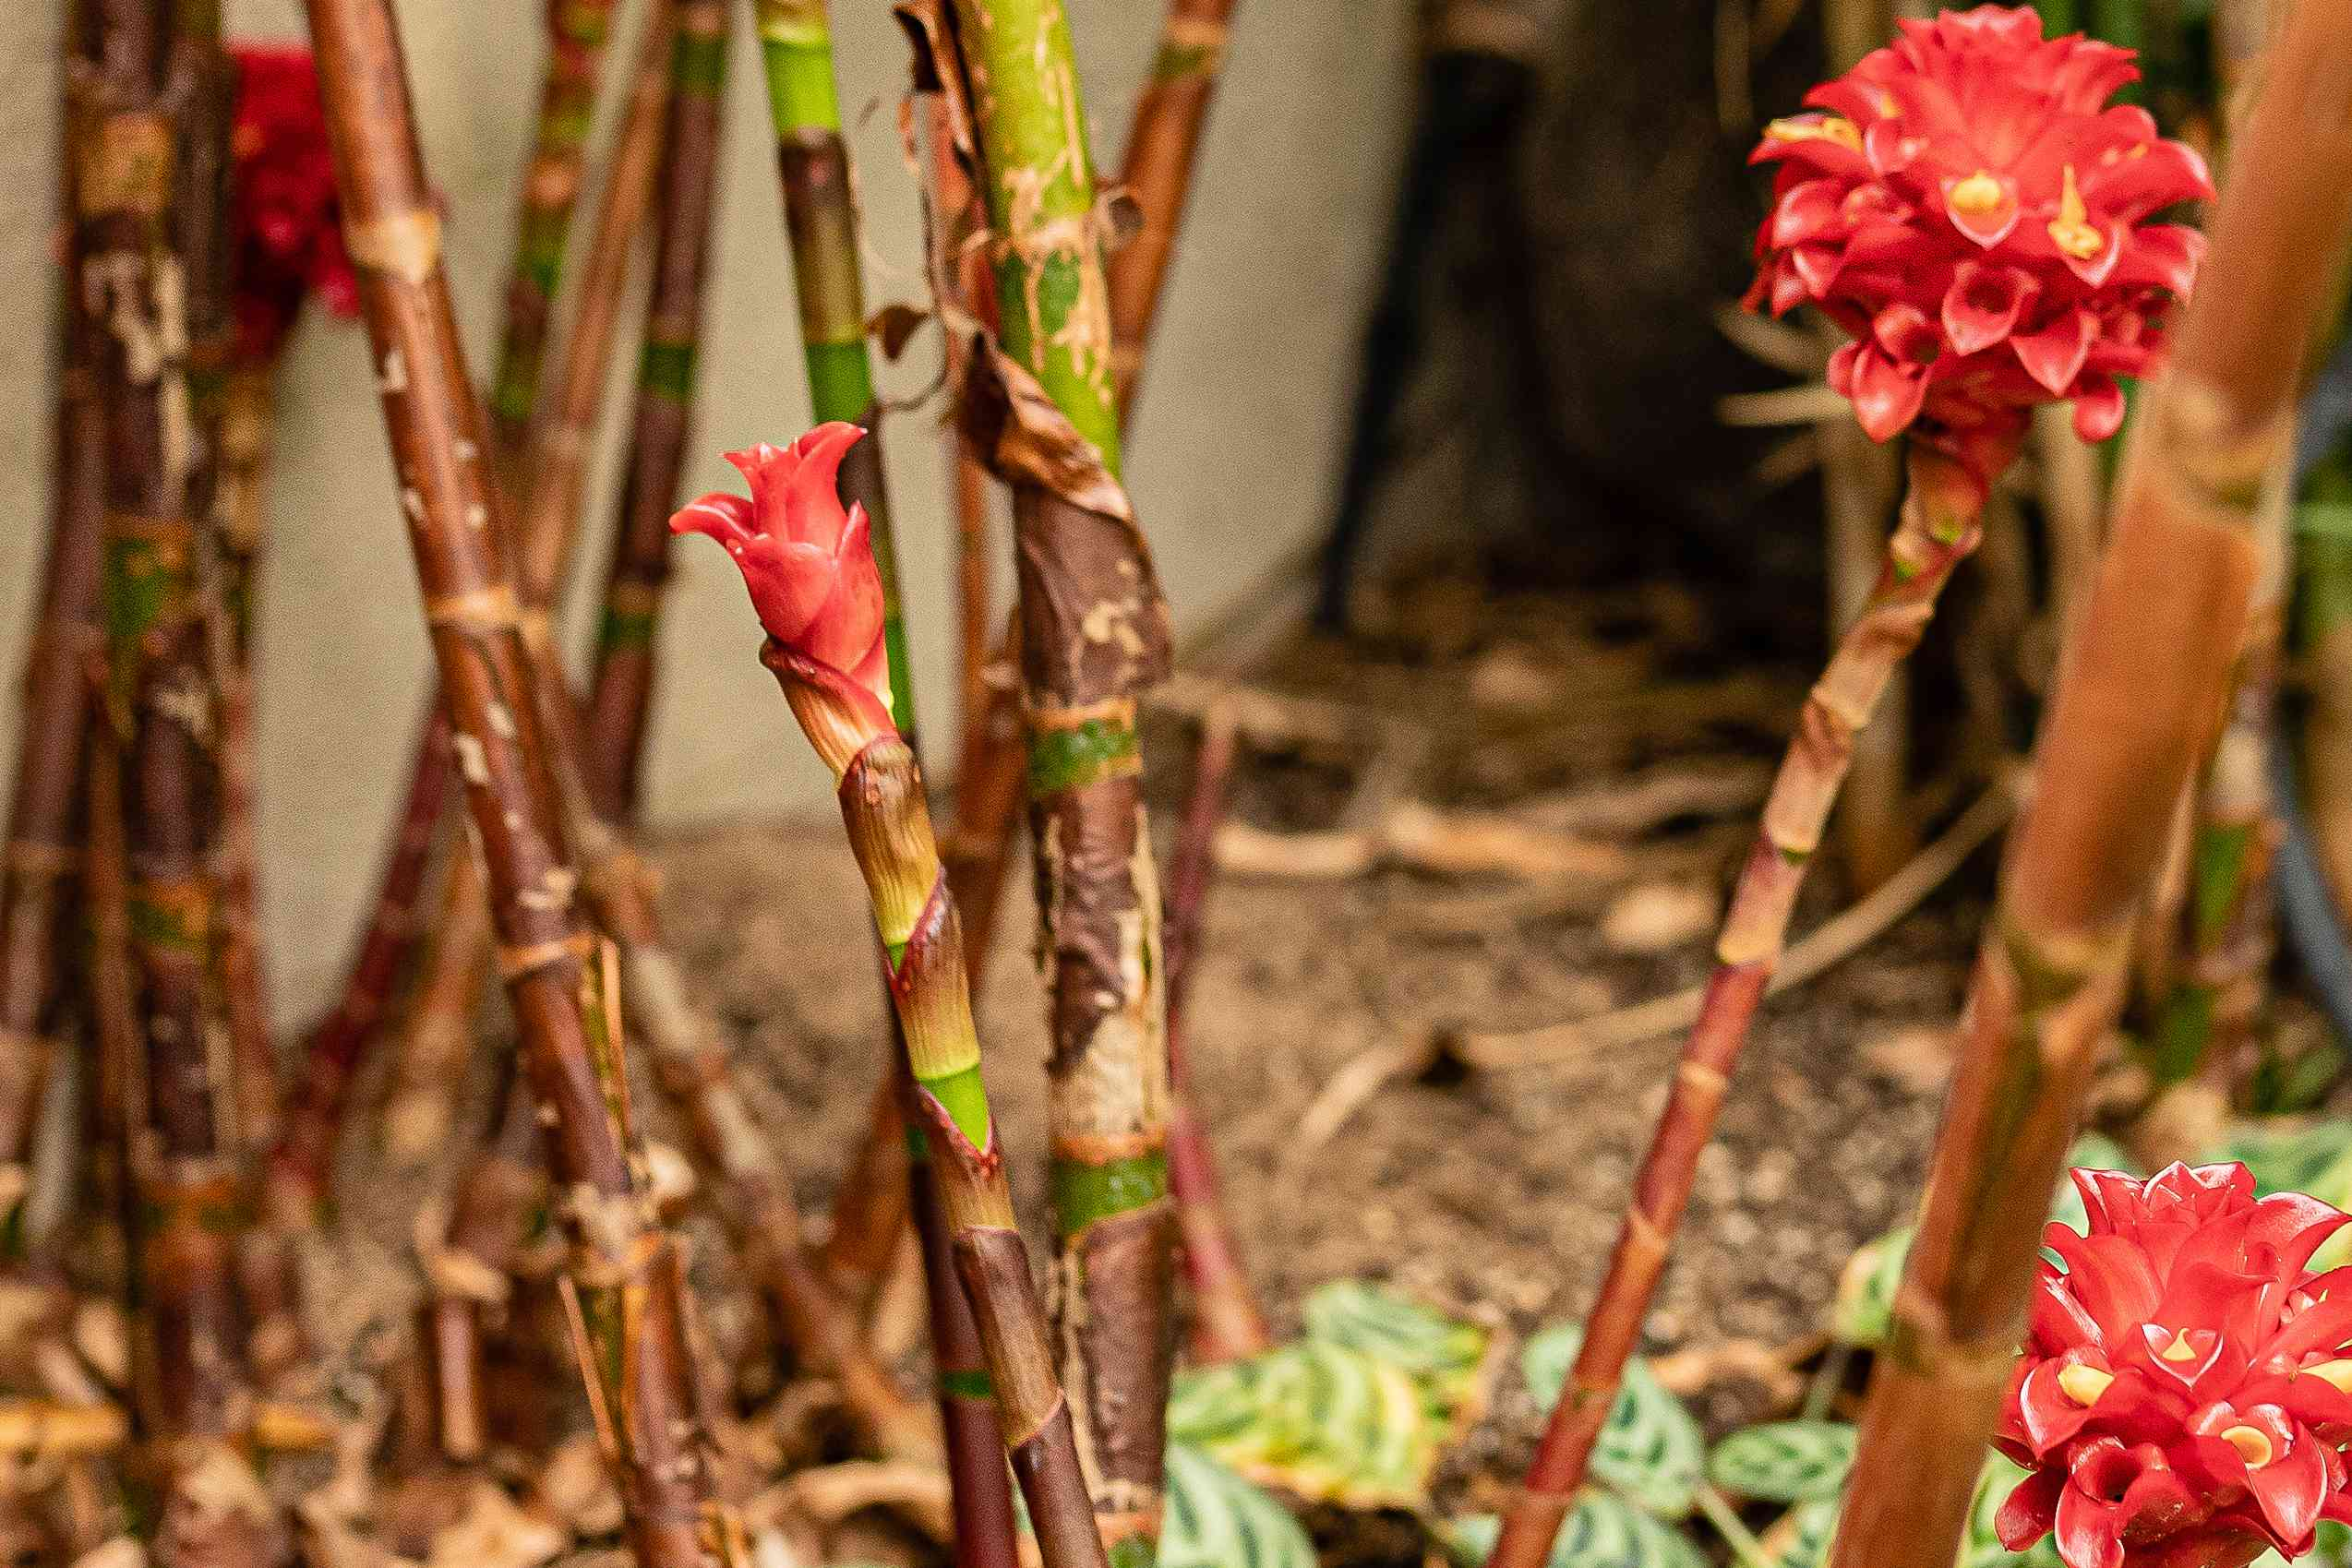 Pineapple ginger plant with reed-like stems and waxy red flower bracts and buds on buds